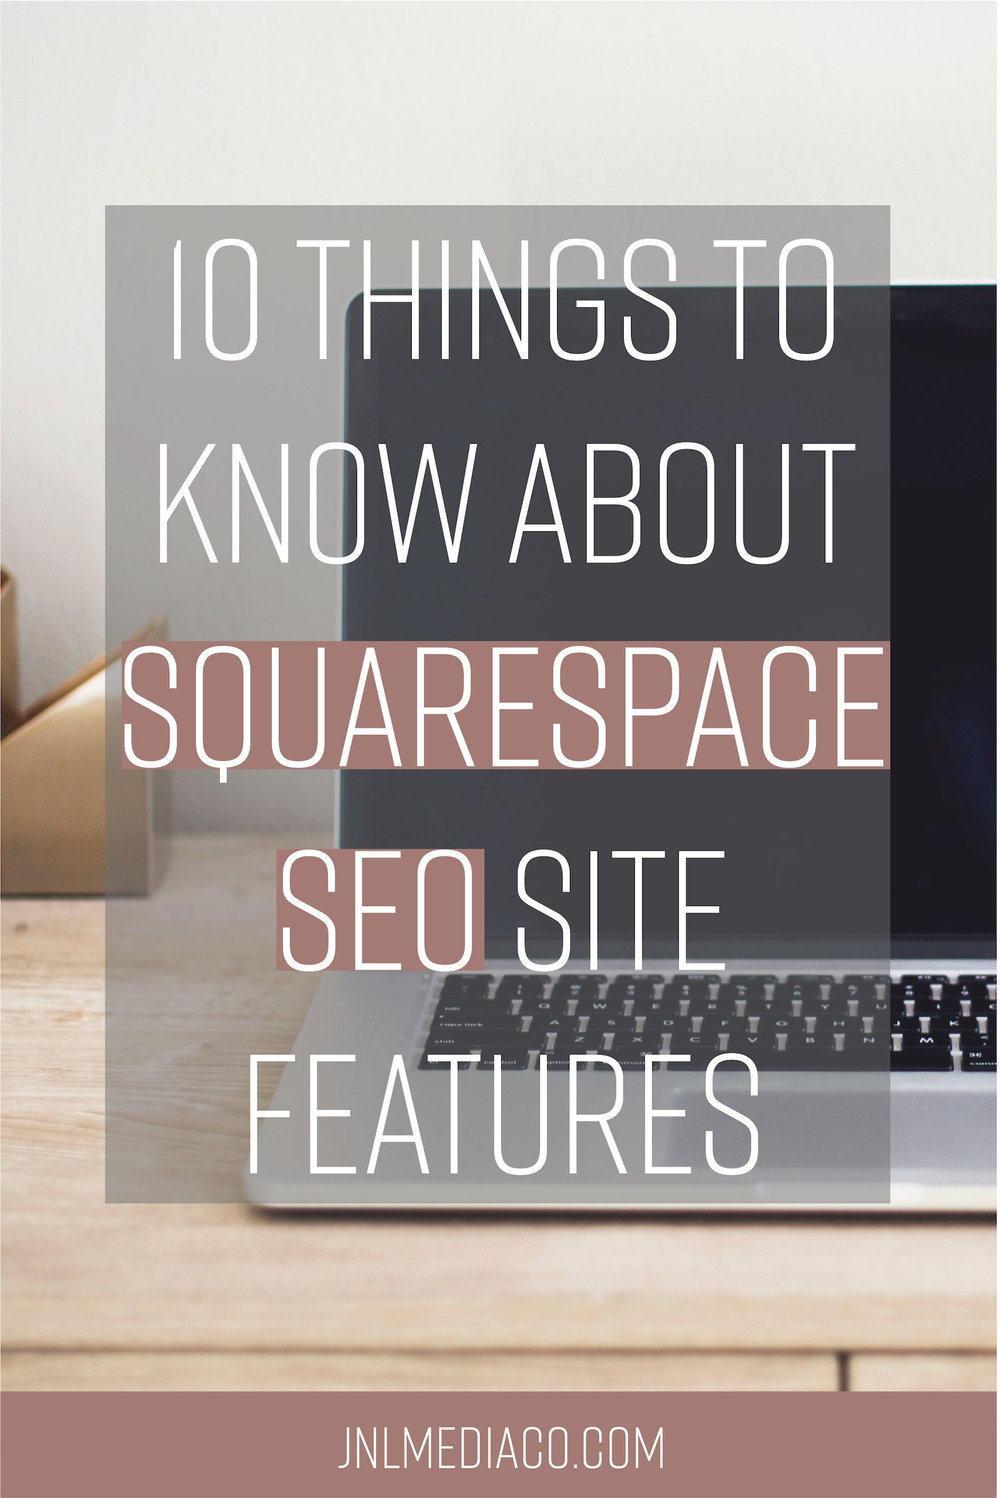 What are the 10 things to know about Squarespace SEO site features? Find out by reading the full blog post and dont forget to re-pin if you found it helpful